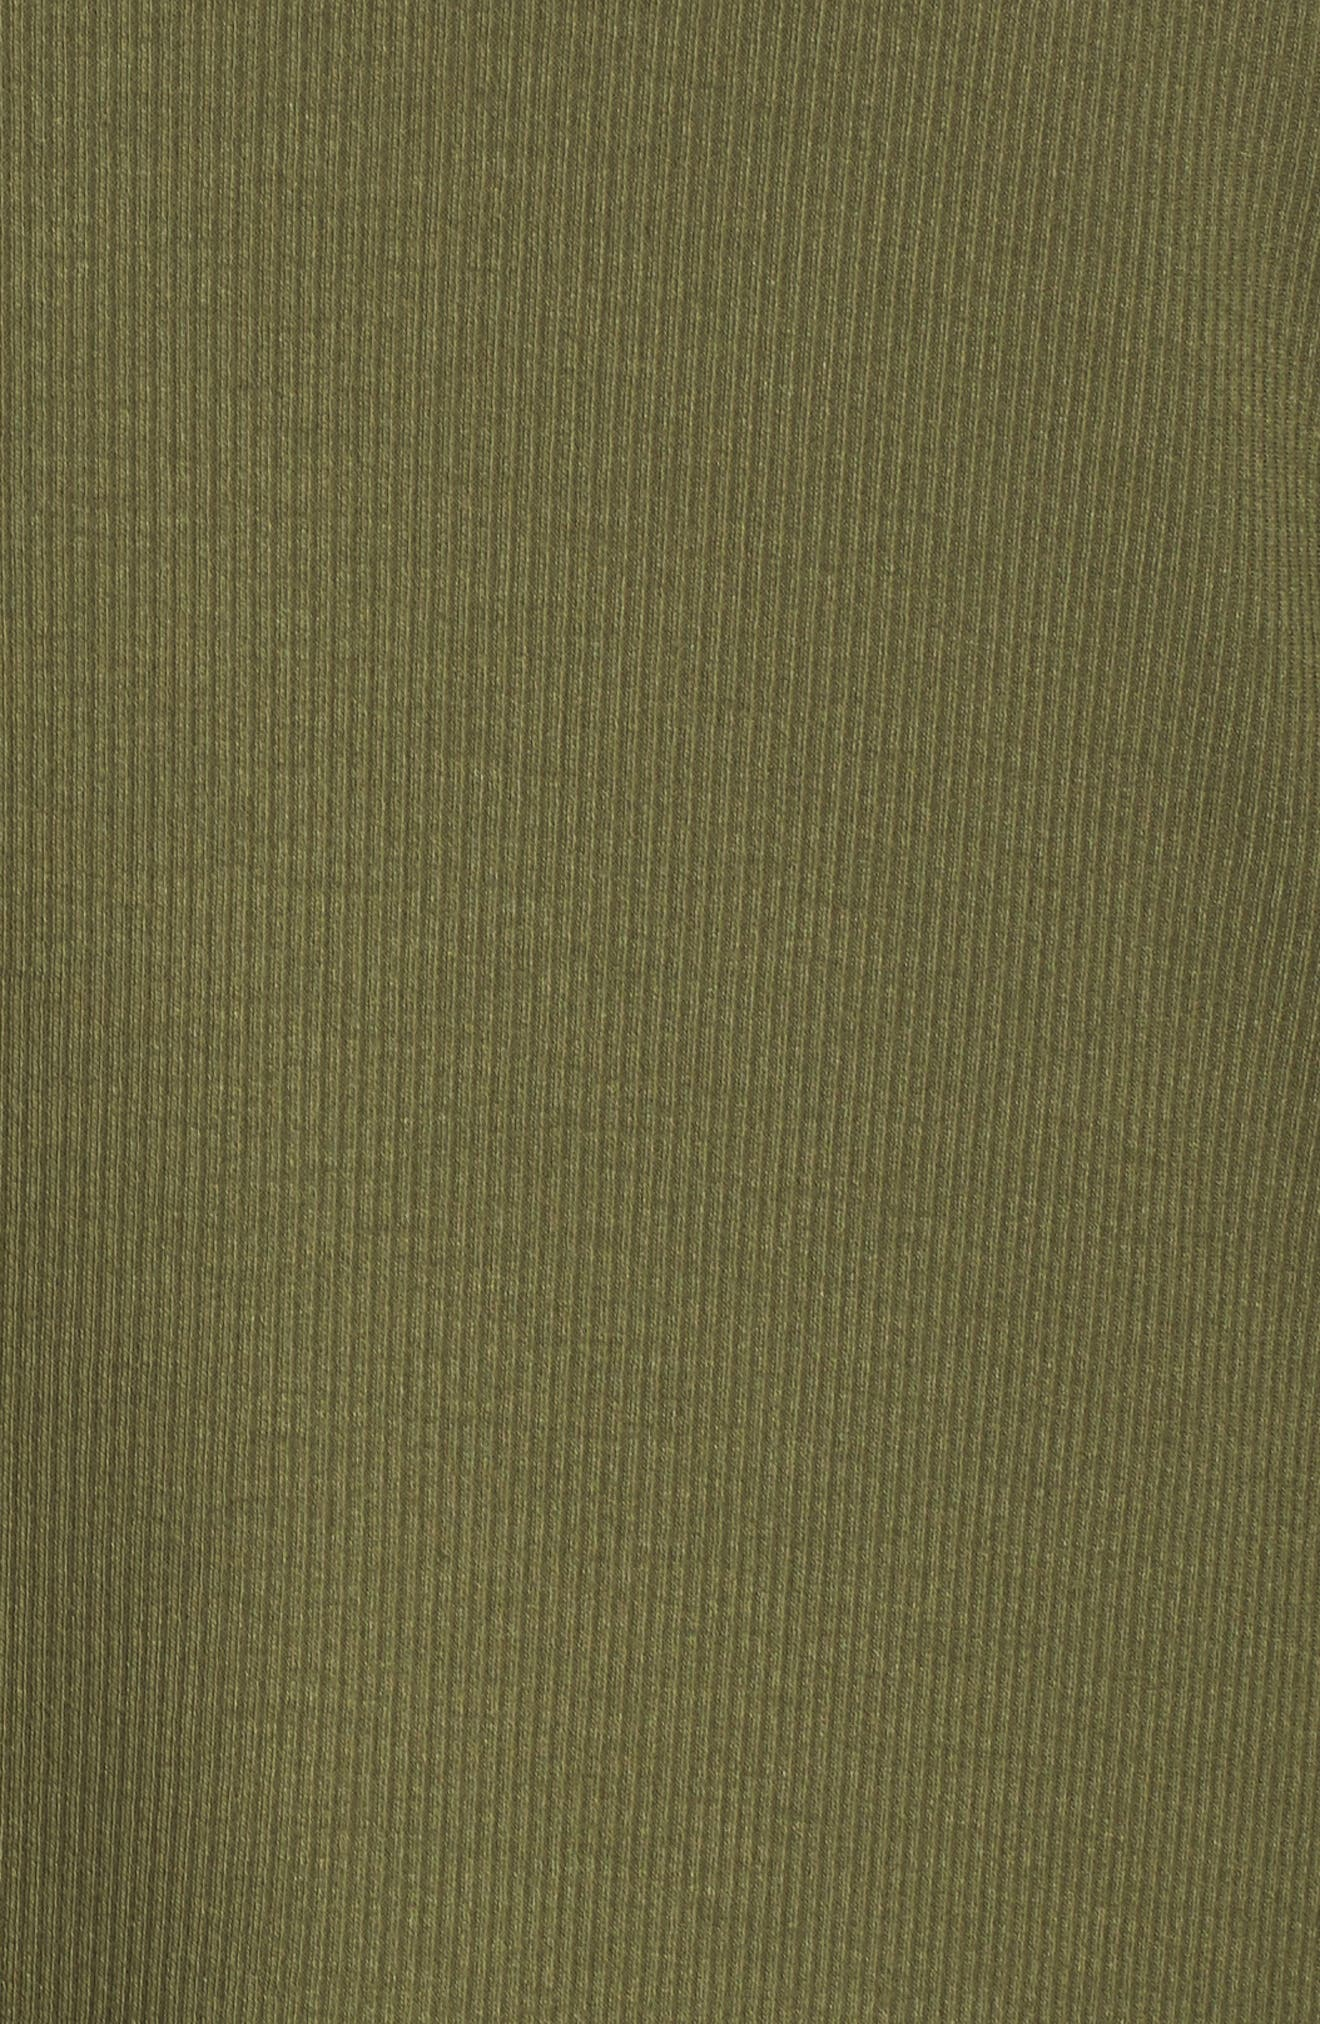 V-Neck Tunic Top,                             Alternate thumbnail 5, color,                             Olive Moss